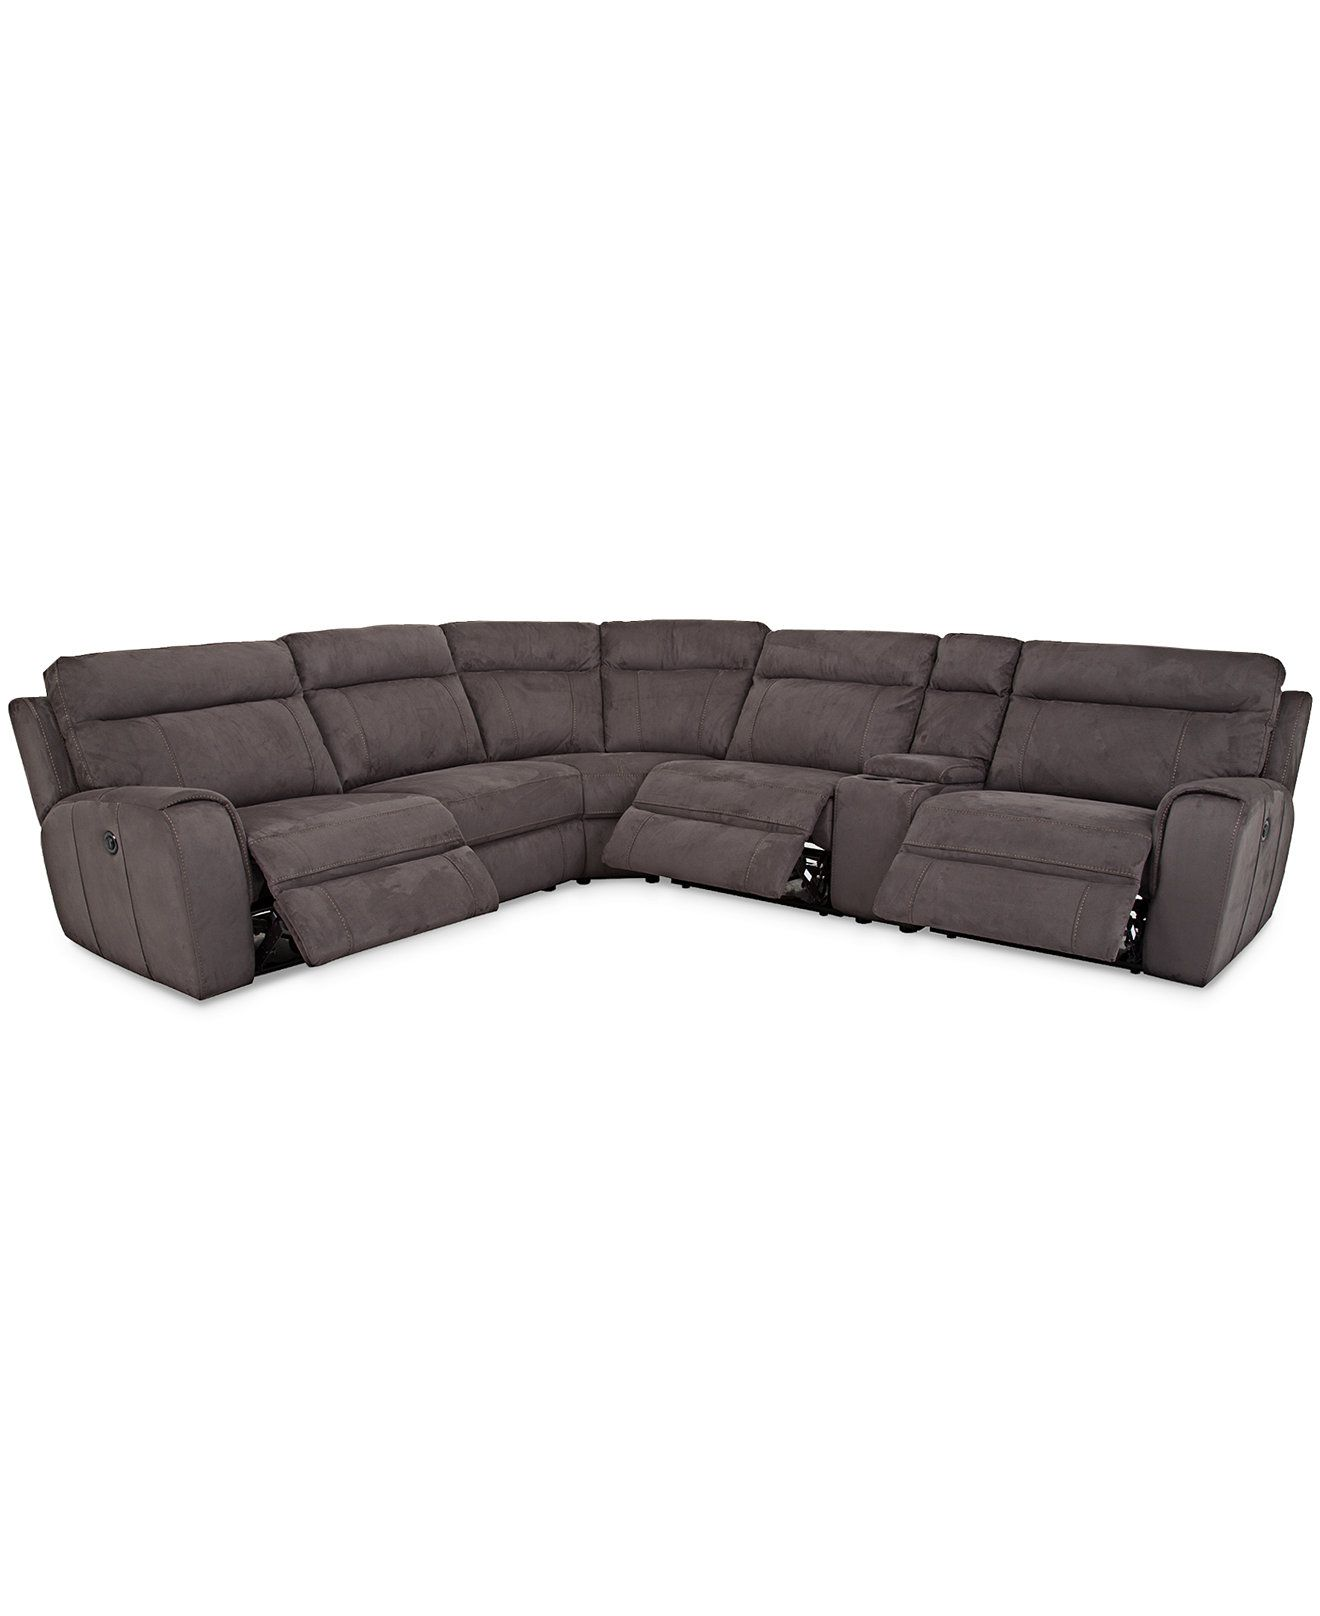 Torie 6 Piece Sectional with 3 Power Motion Recliners Sectional